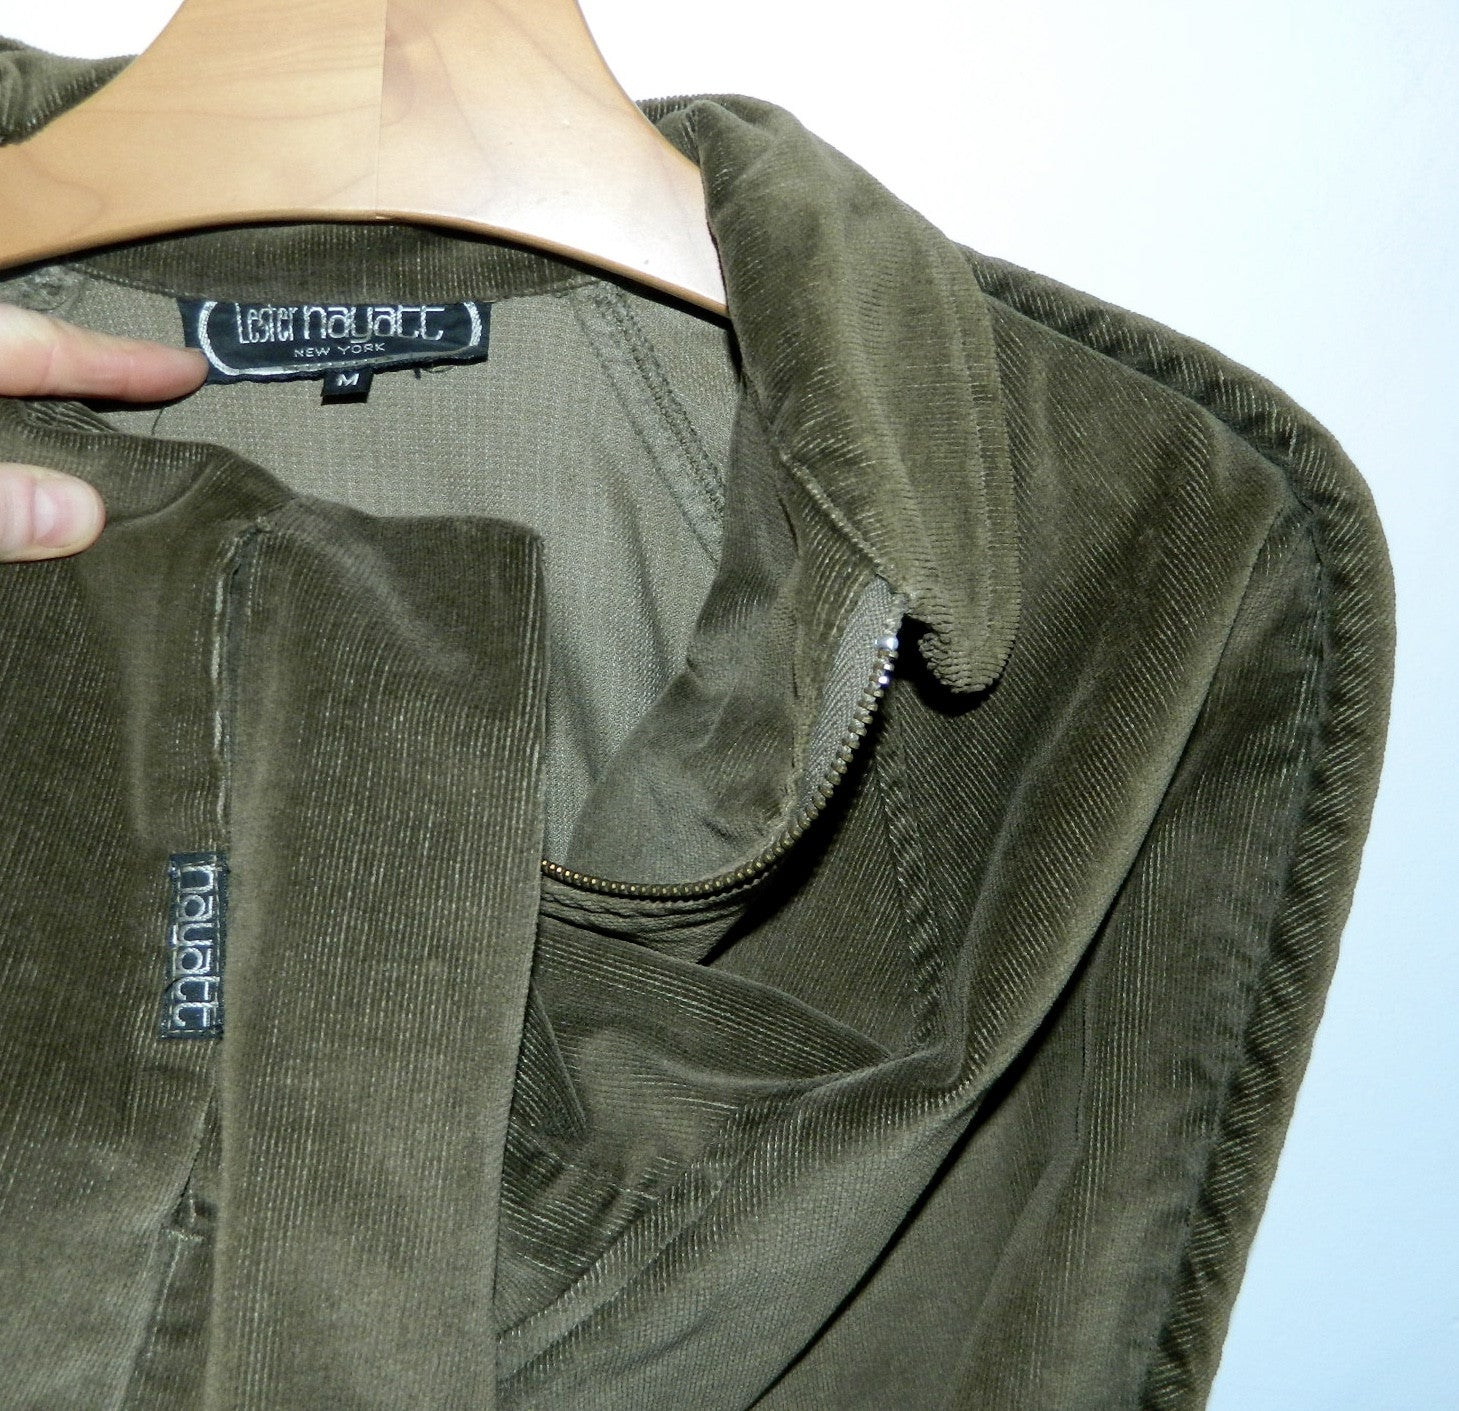 vintage 1980s olive green car coat Lester Hayatt corduroy barn jacket swing coat M OSFM